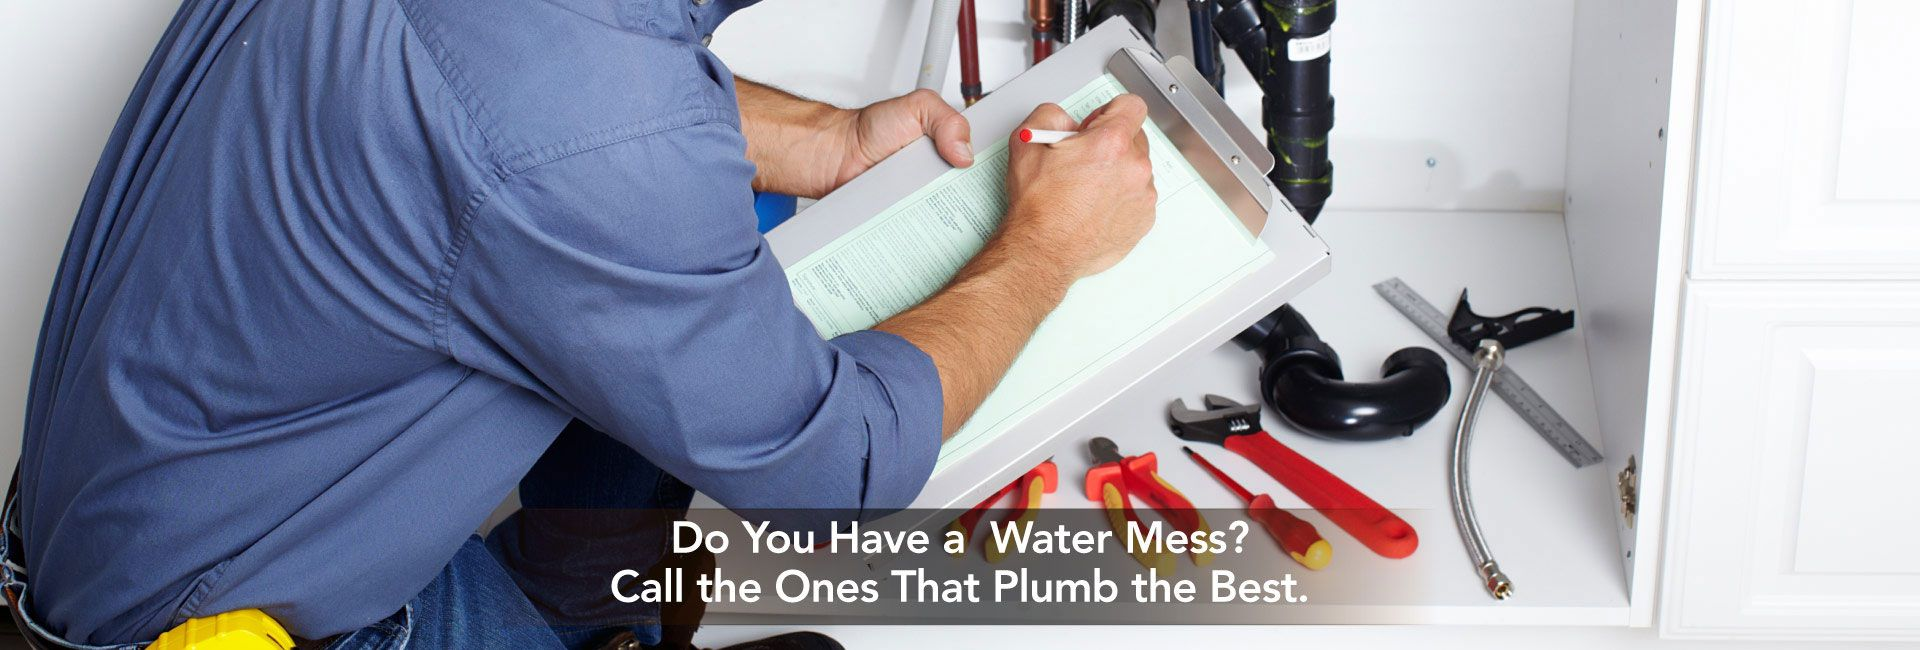 Do You Have a Water Mess? Call the Ones That Plumb the Best. | Plumber with clip board